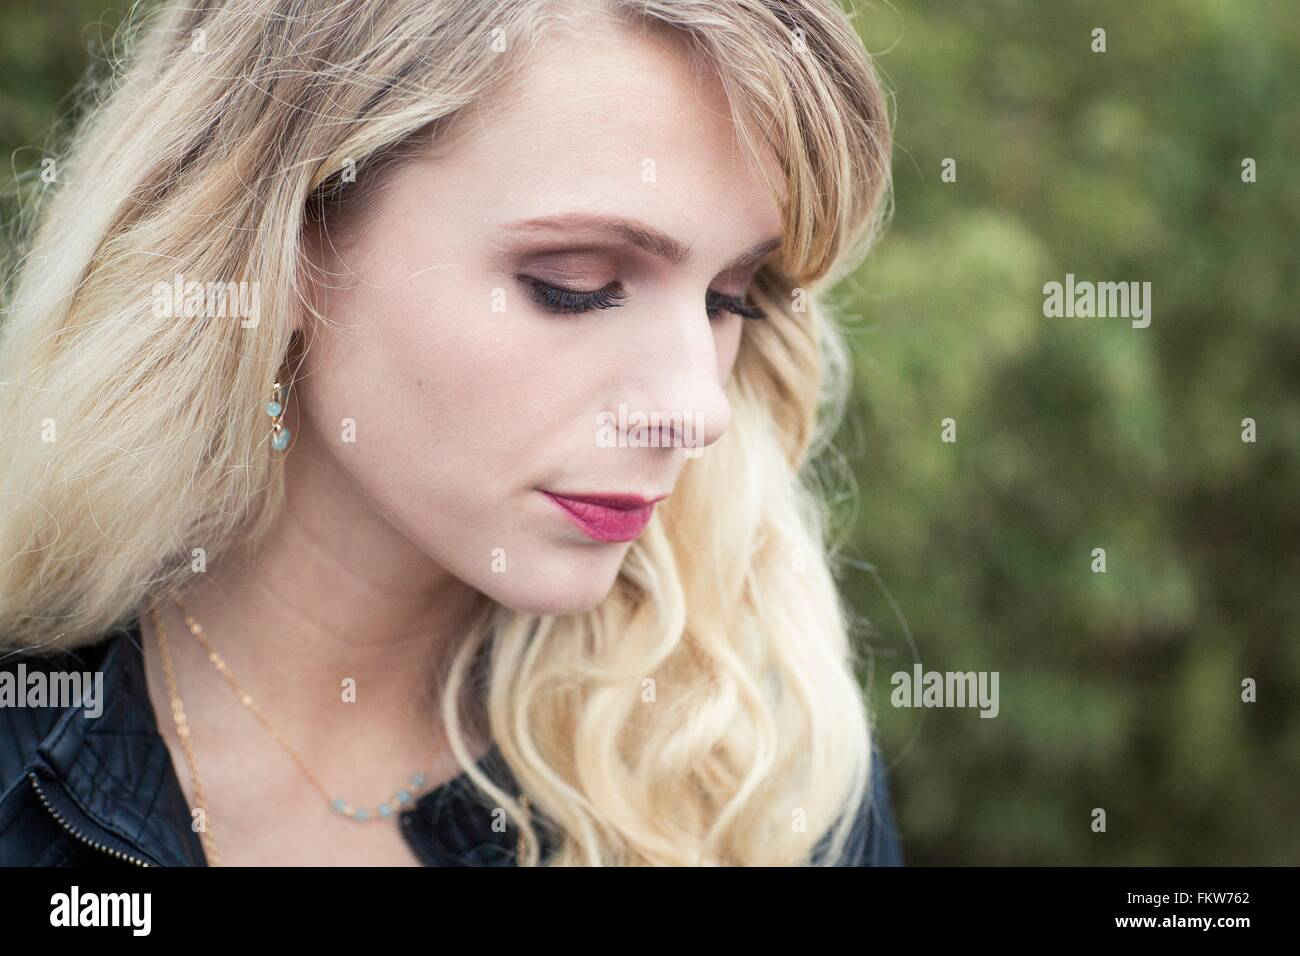 Portrait of young blonde haired woman looking down Stock Photo